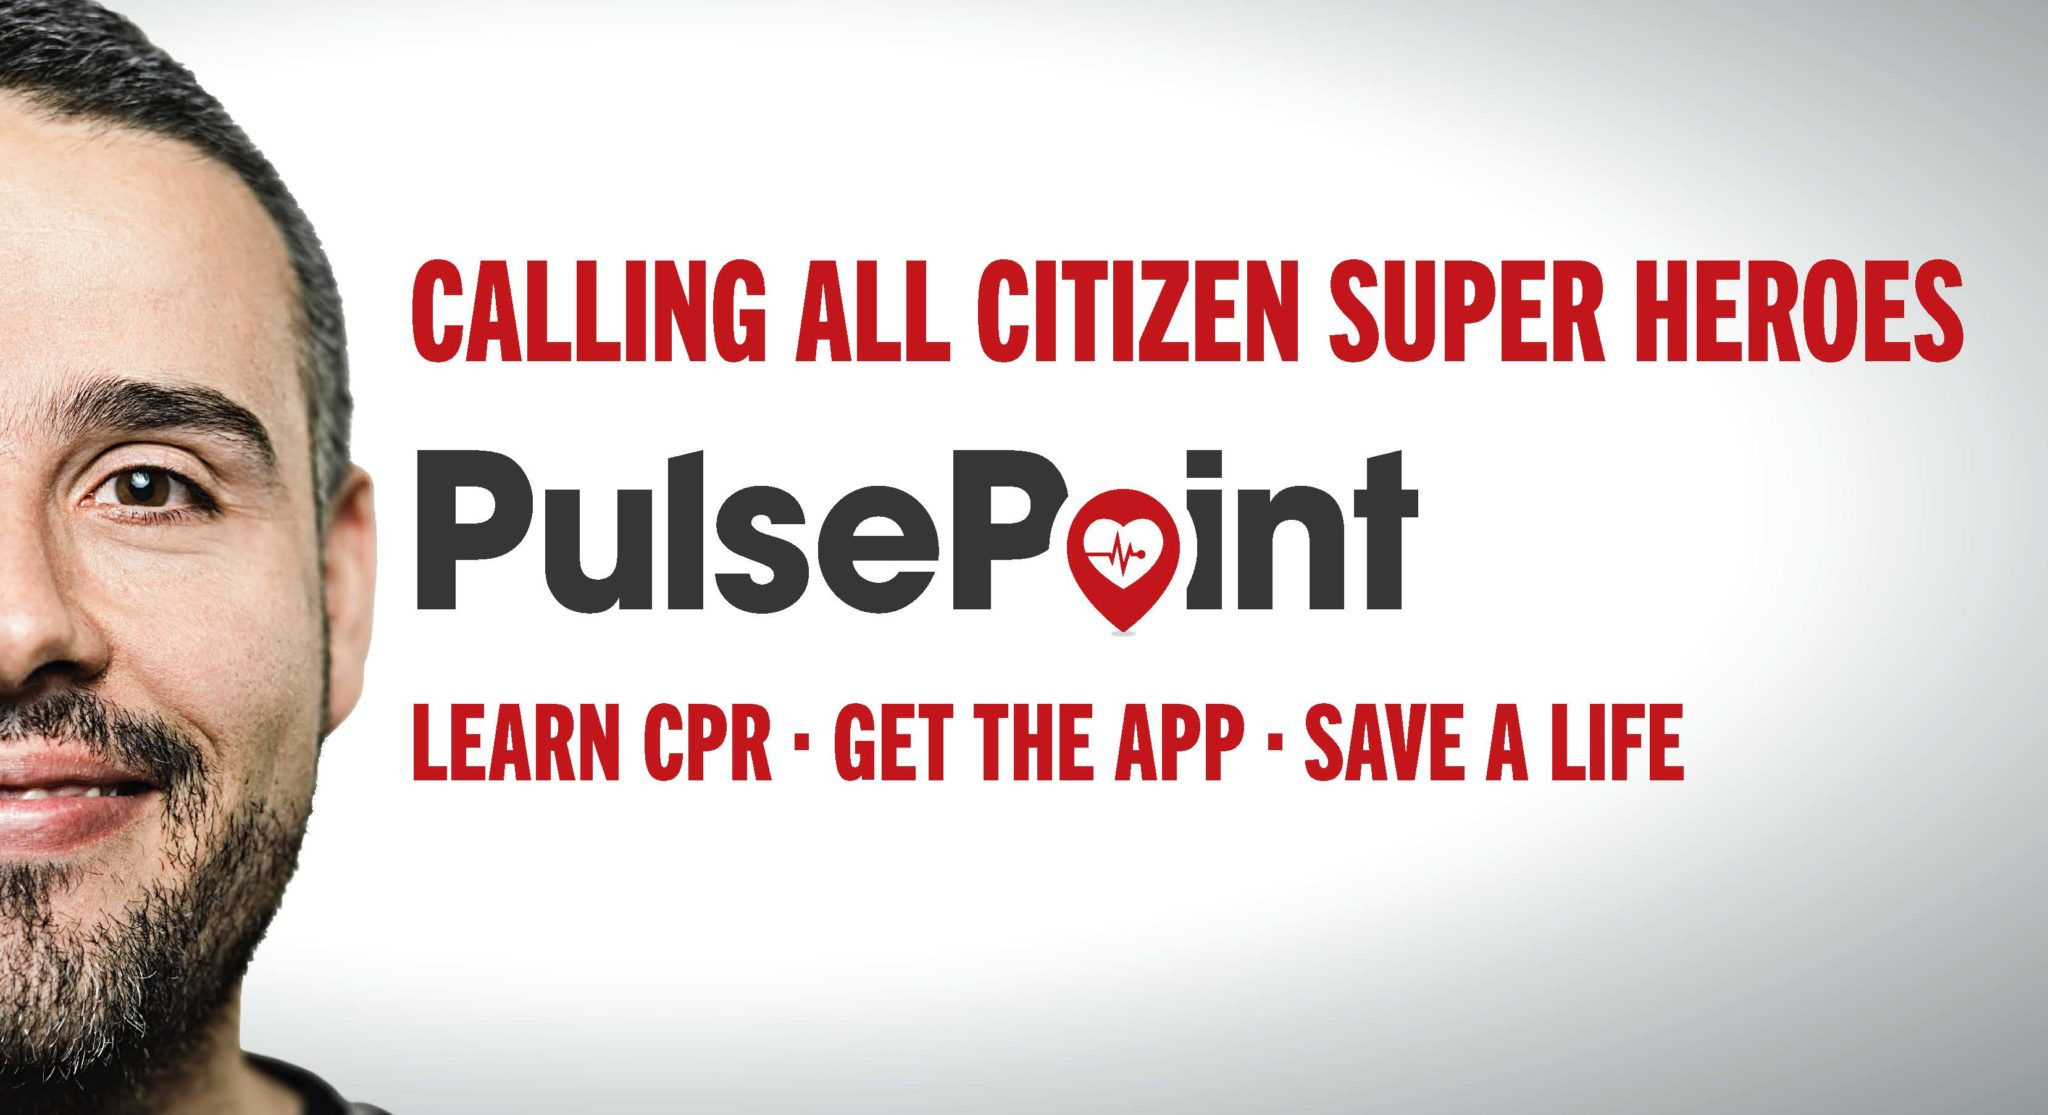 Fire city of casa grande casa grande brings lifesaving technology to community with pulsepoint app xflitez Image collections